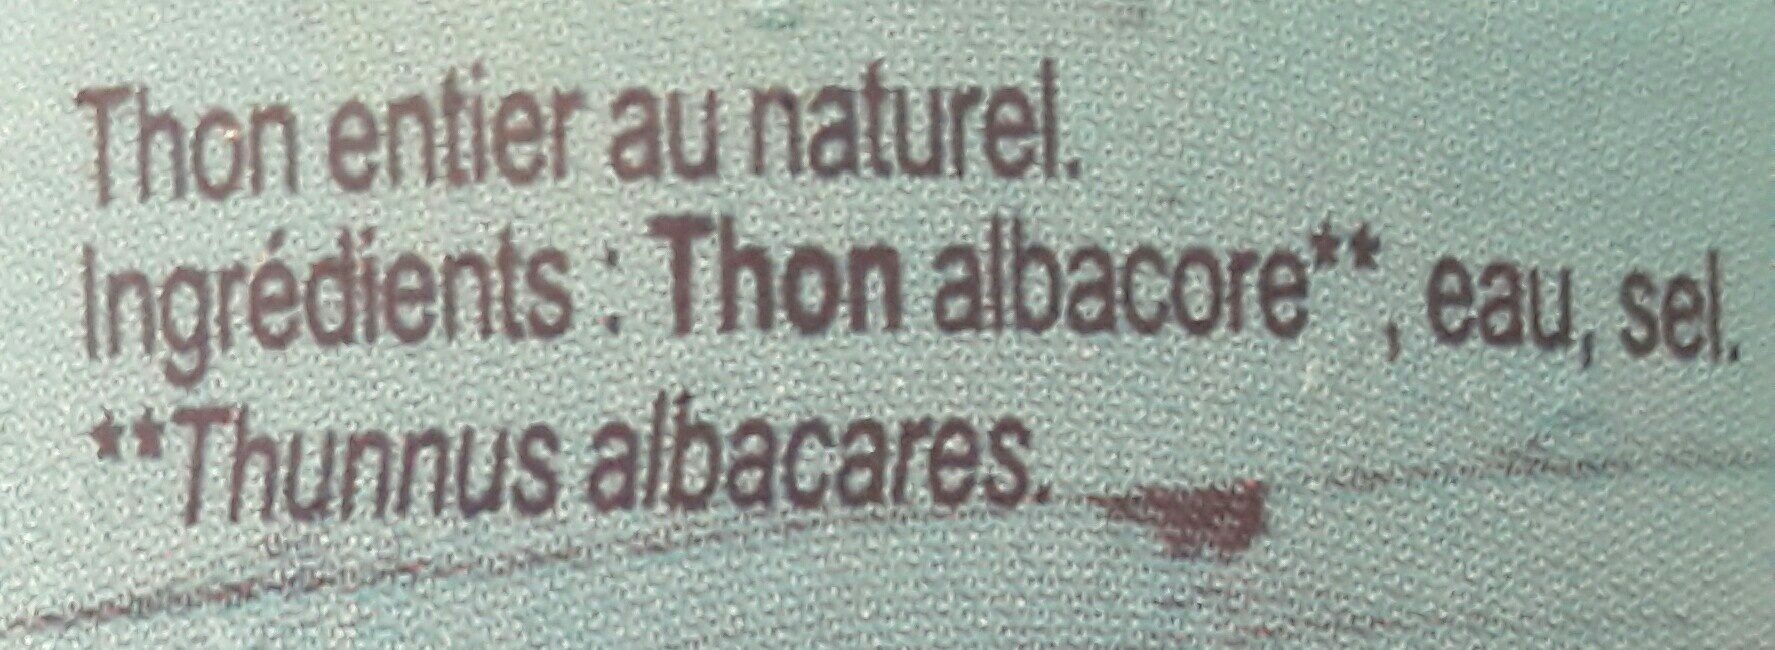 Thon entier au naturel - Ingredients - fr